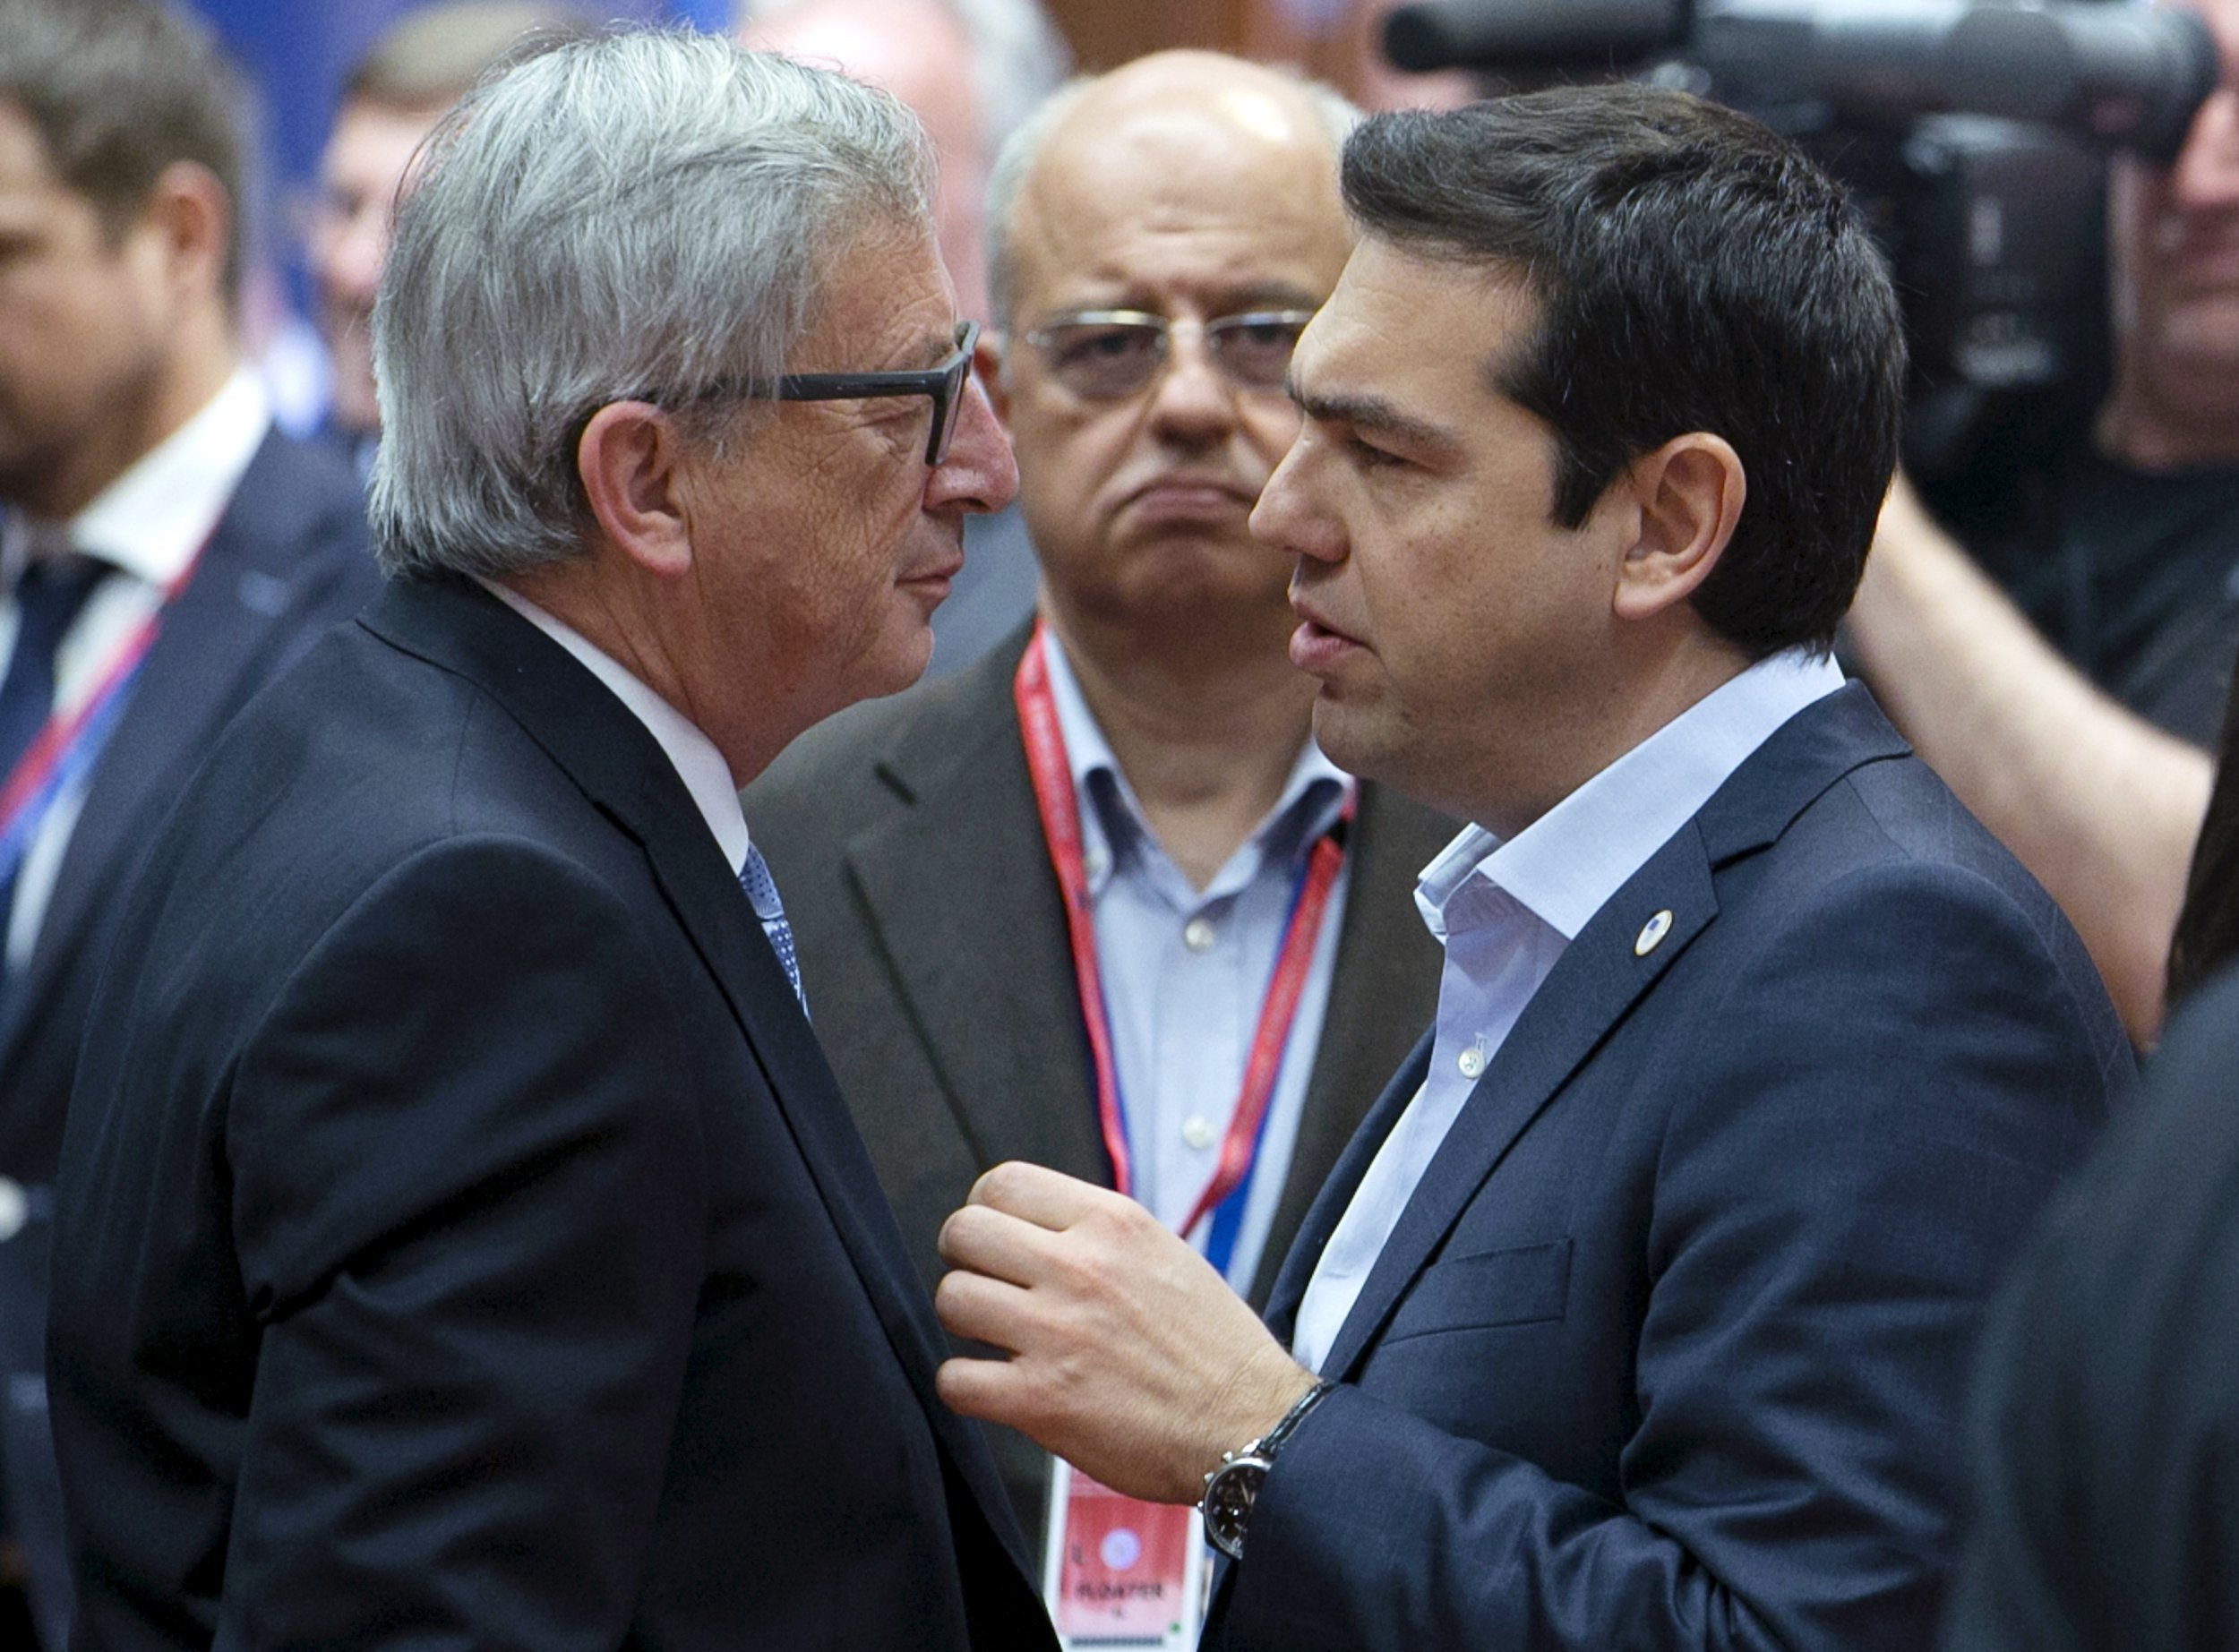 Juncker and Tsipras